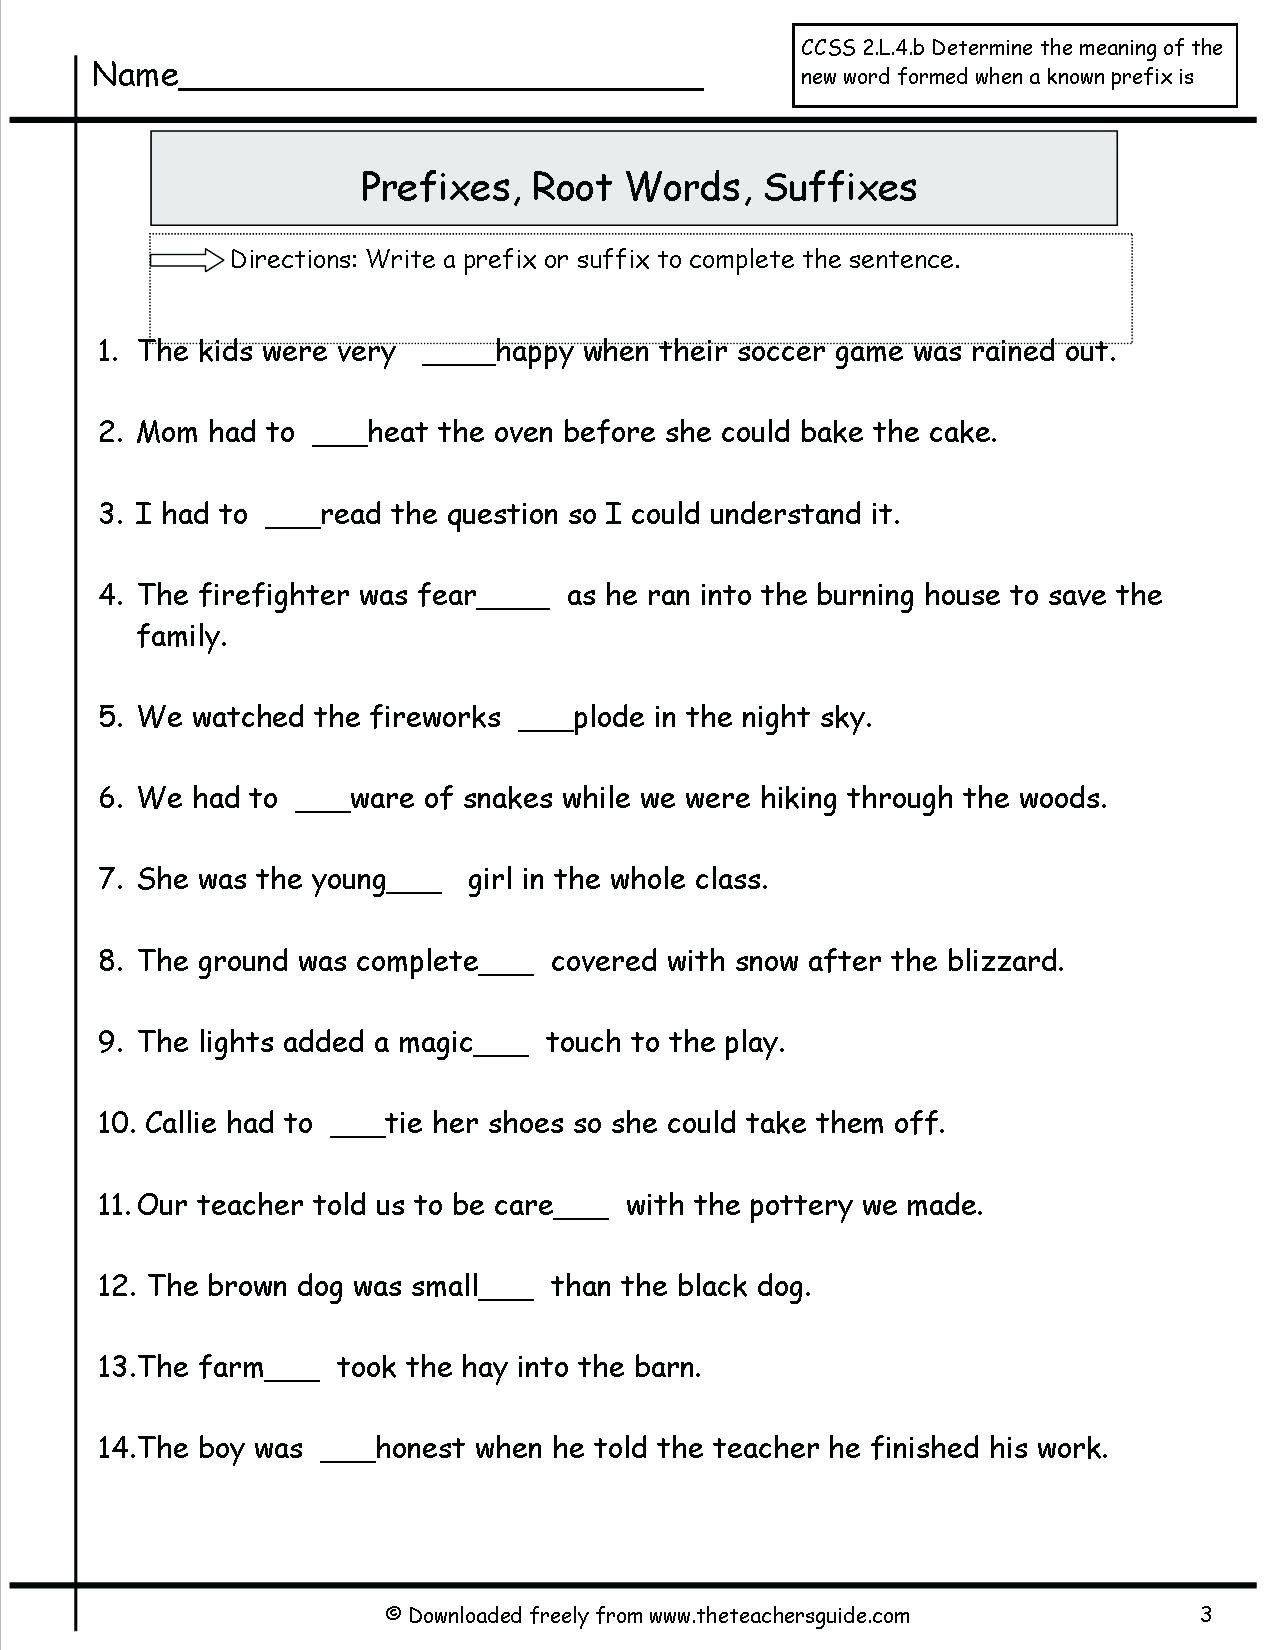 small resolution of Suffix Worksheets for 4th Grade 3rd Grade Prefixes and Suffixes Worksheets  Root Words   Suffixes worksheets